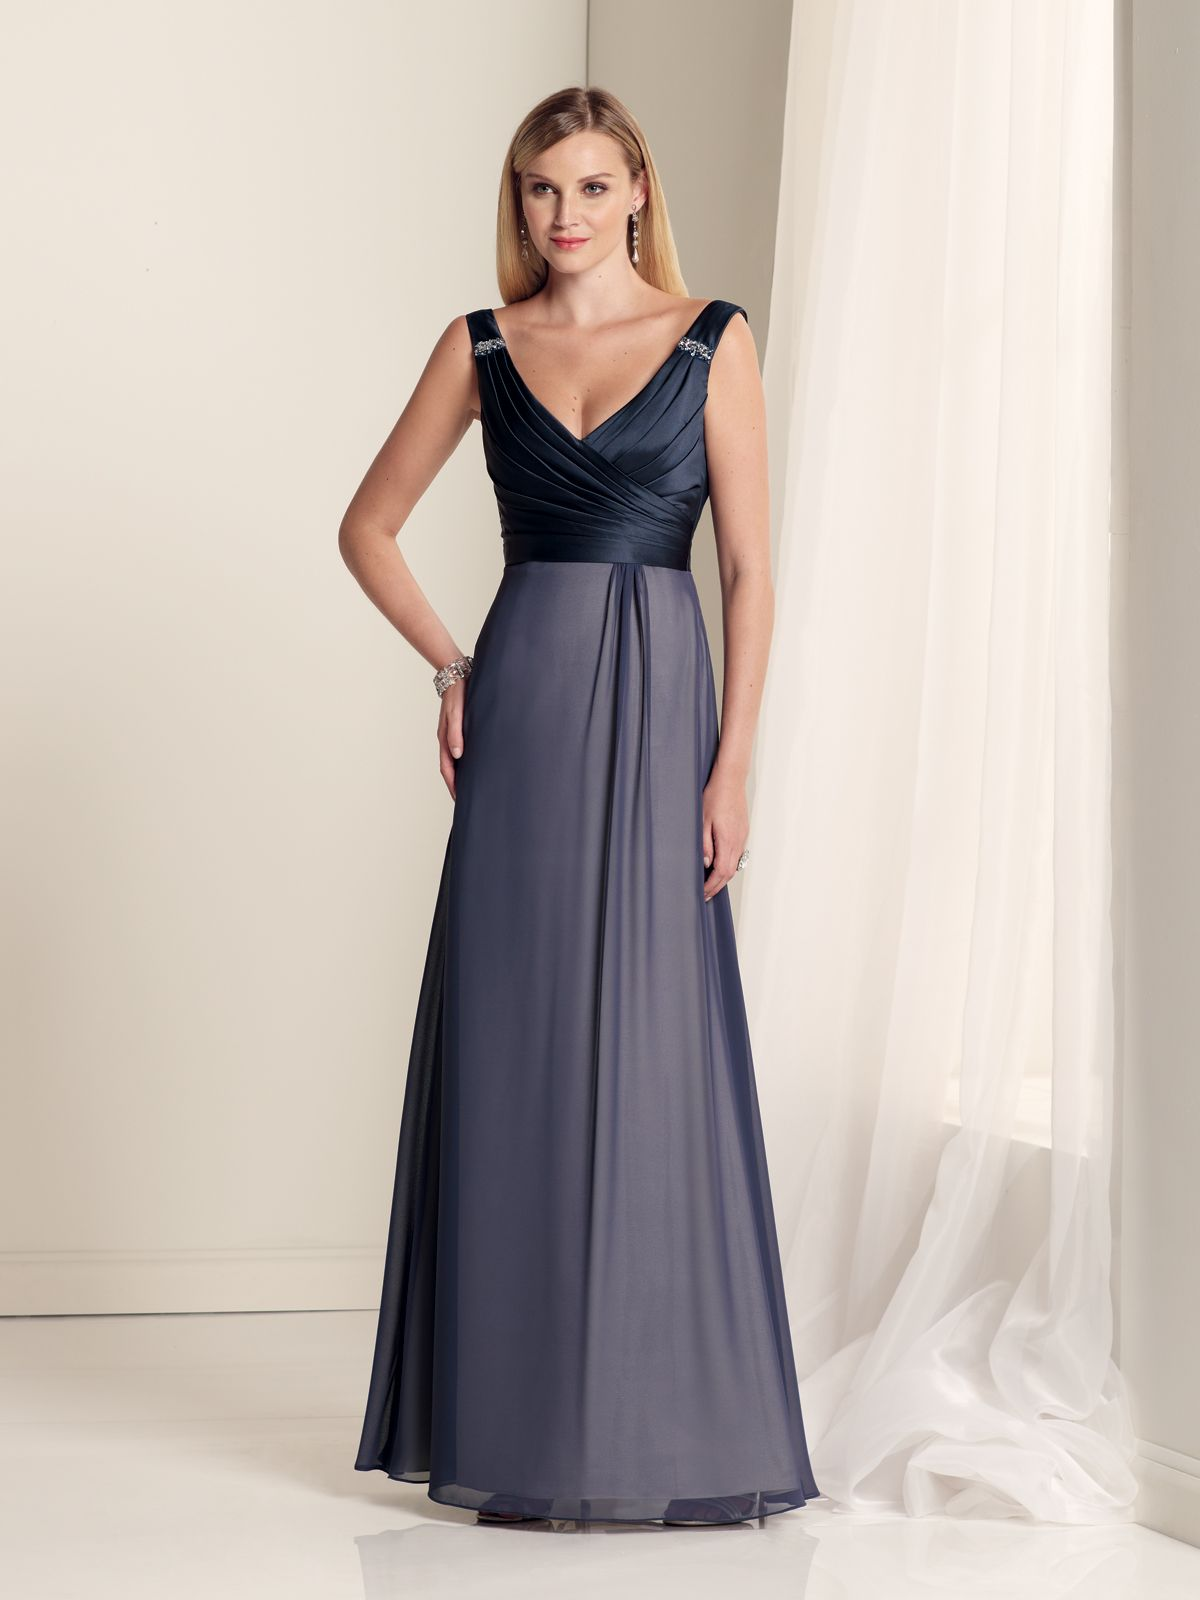 Sleeveless satin and chiffon aline gown with vneckline hand